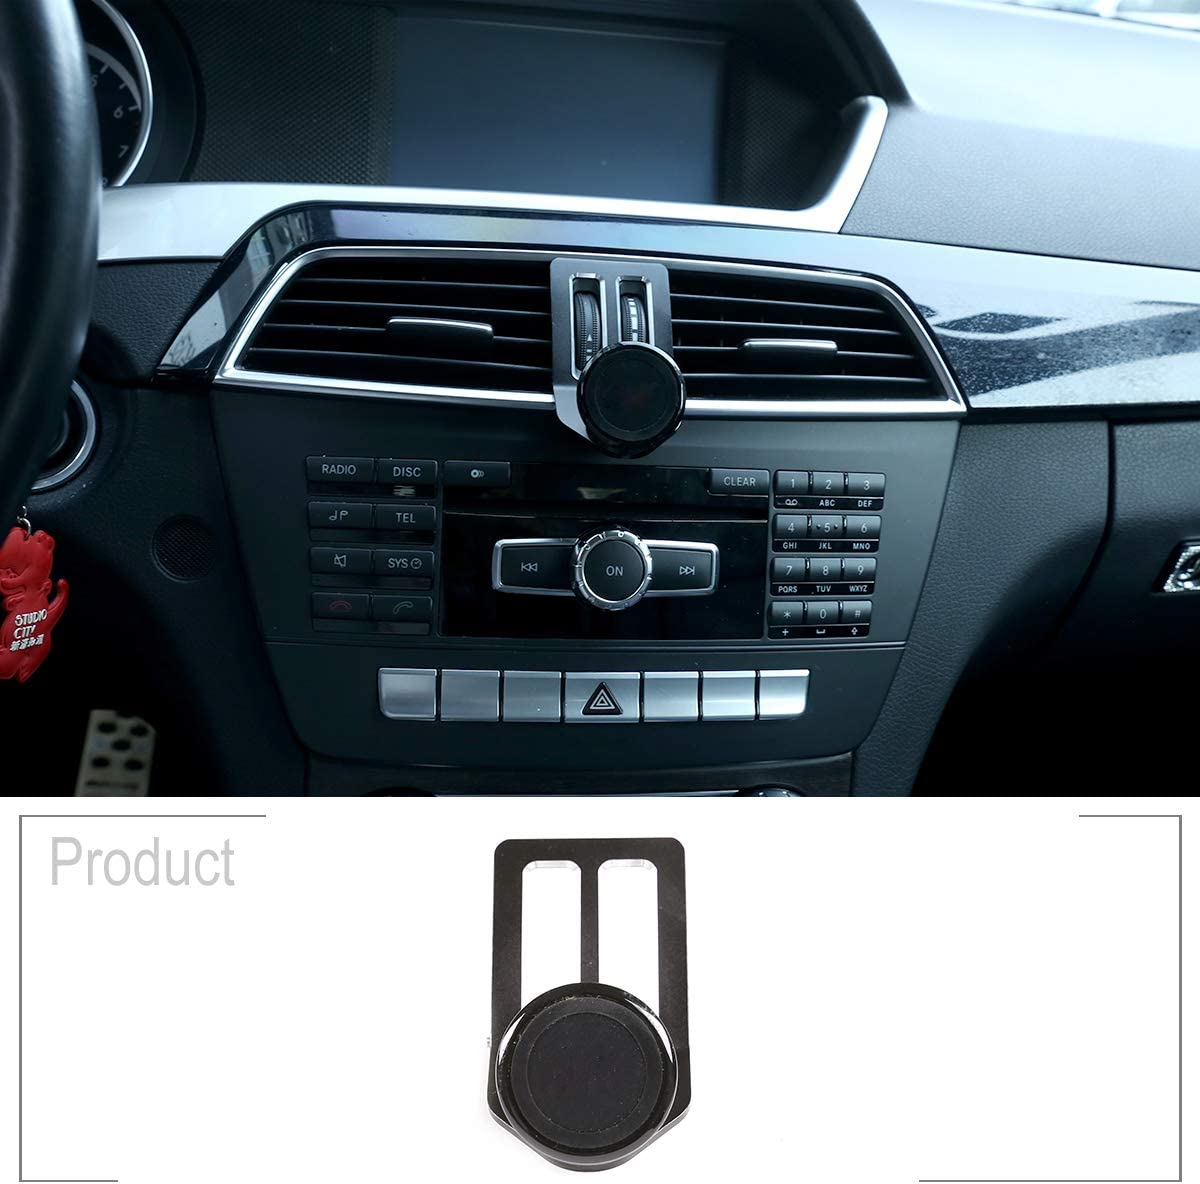 YIWANG Alumium Alloy Mobile Phone Holder Trim For Benz C Class W204 2008-2013 Car Accessories